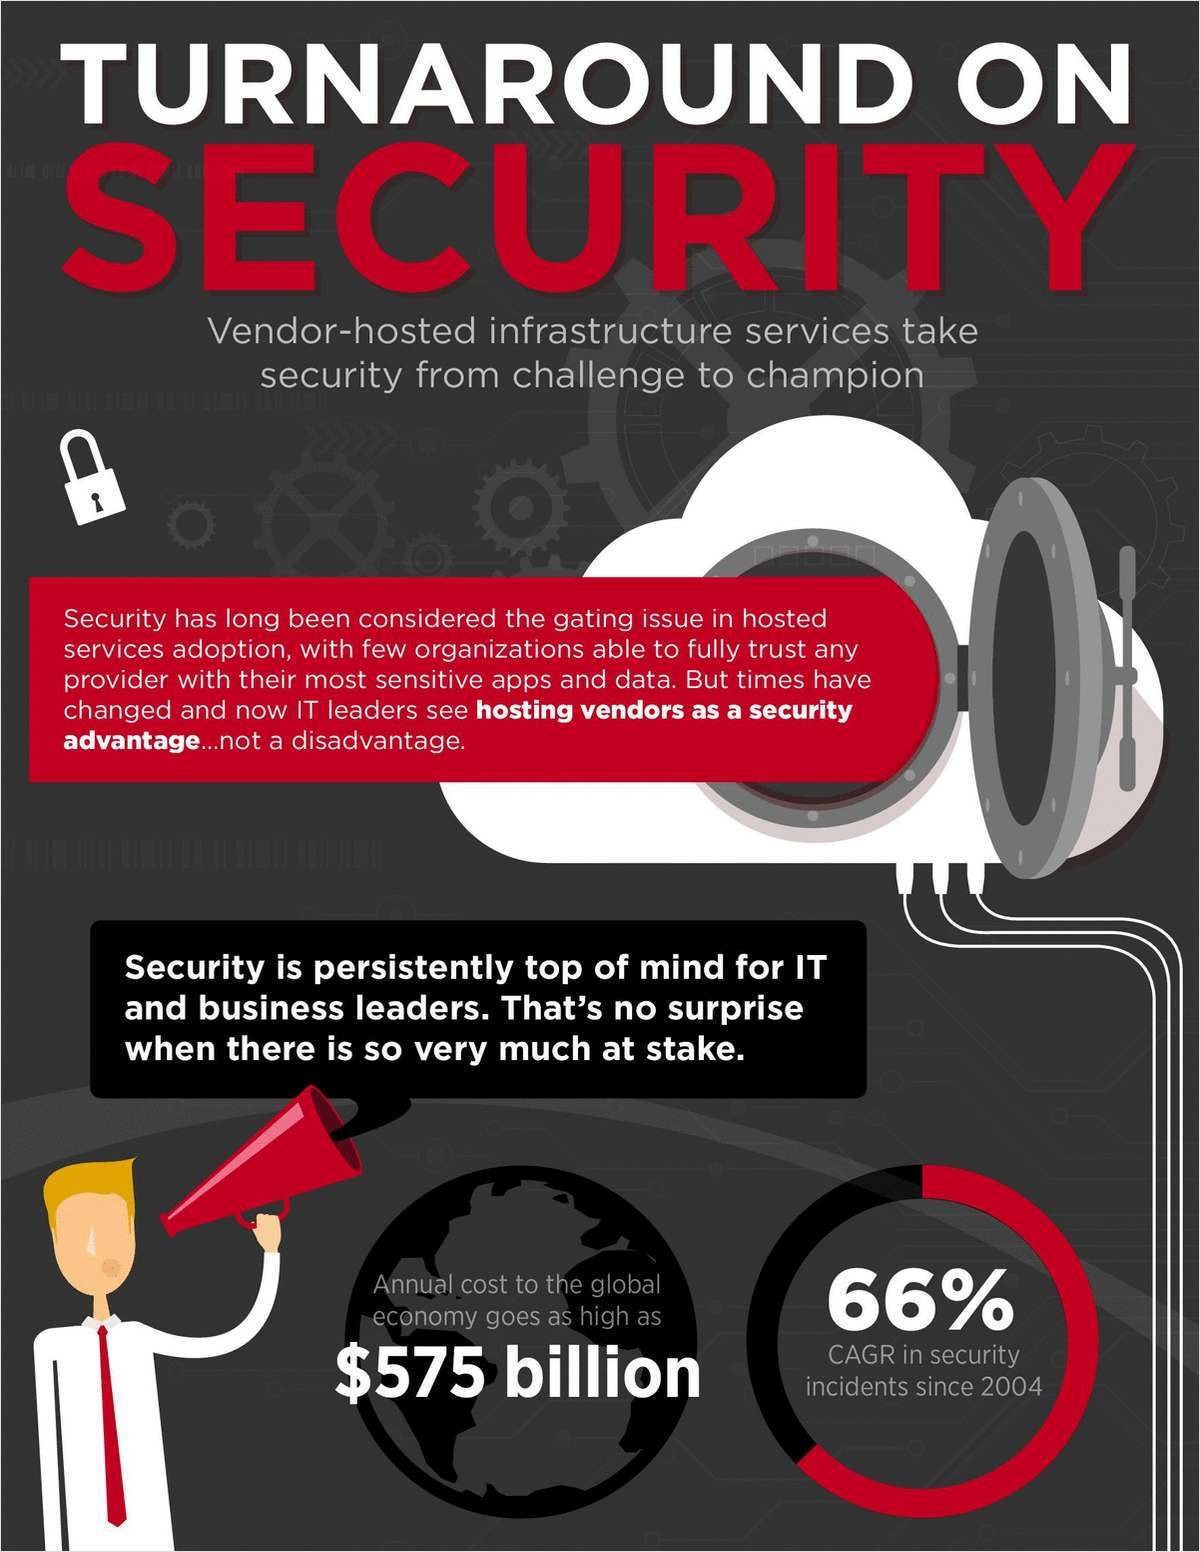 Is Security too Risky to Outsource?